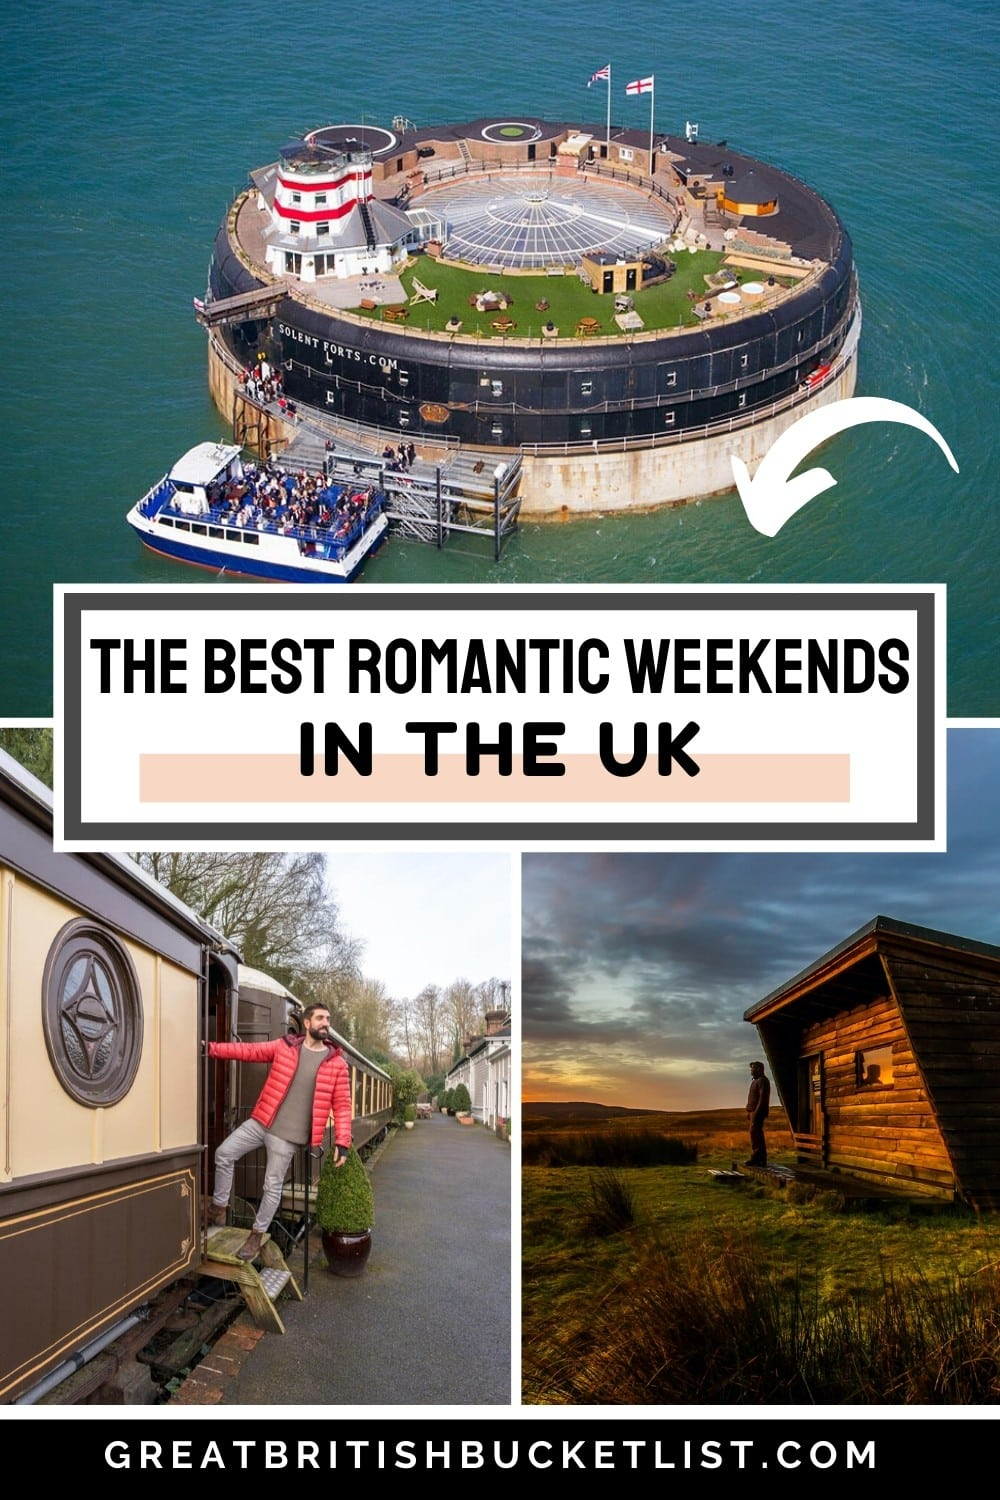 The Most Unusual Romantic Weekend Breaks in the UK